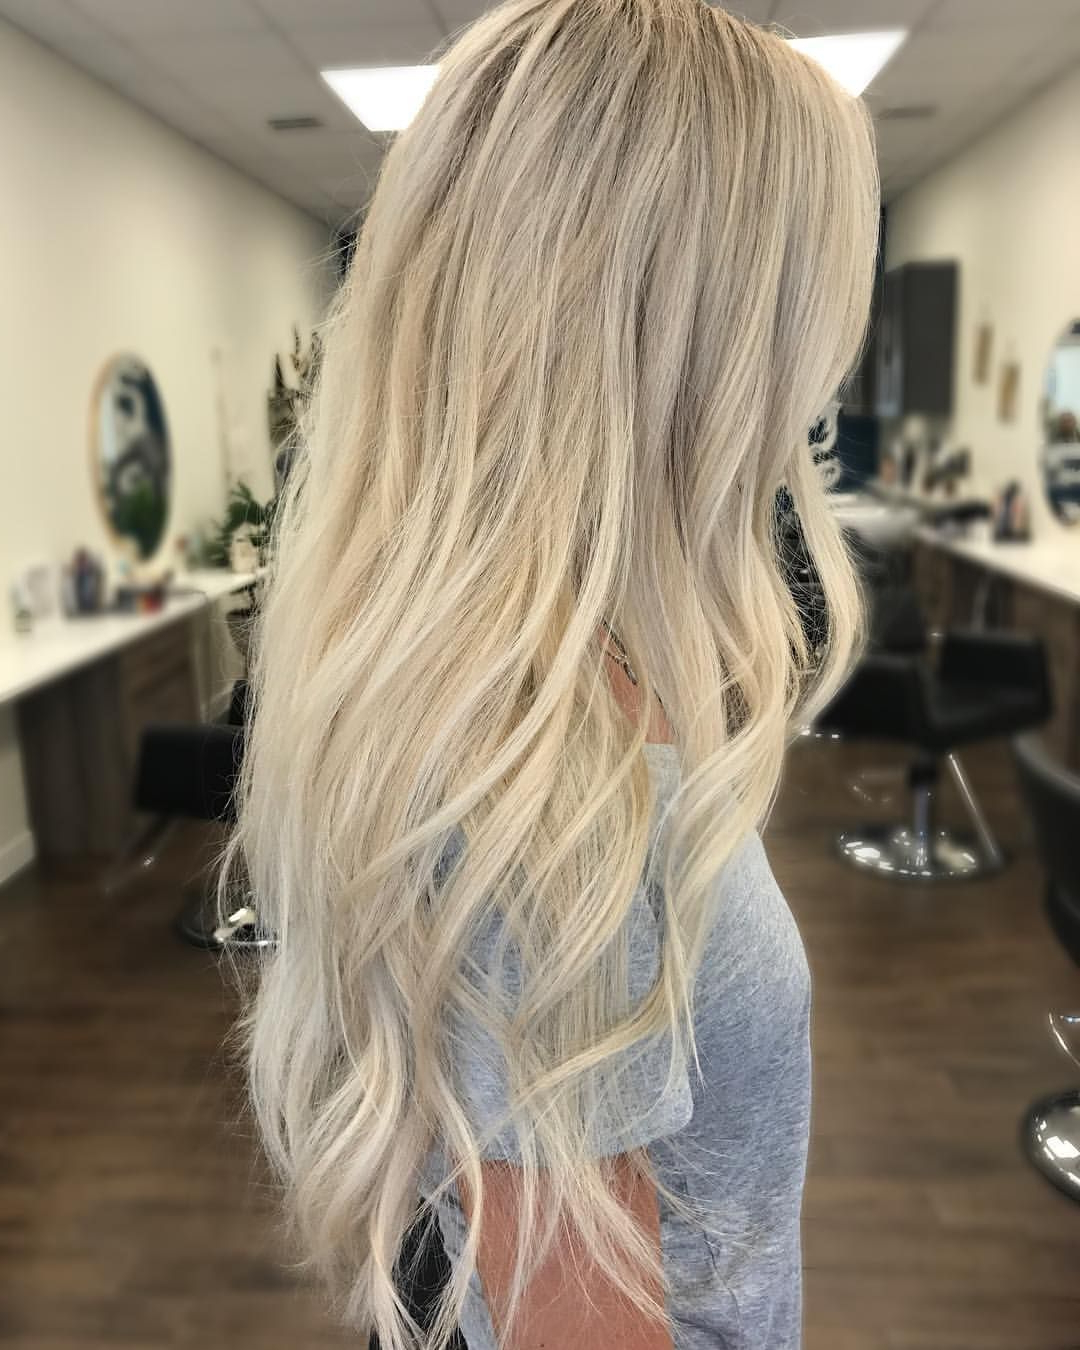 Pretty Long Hair | Hair And Makeup | Pinterest | Blonde Color With Regard To Angelic Blonde Balayage Bob Hairstyles With Curls (View 6 of 25)